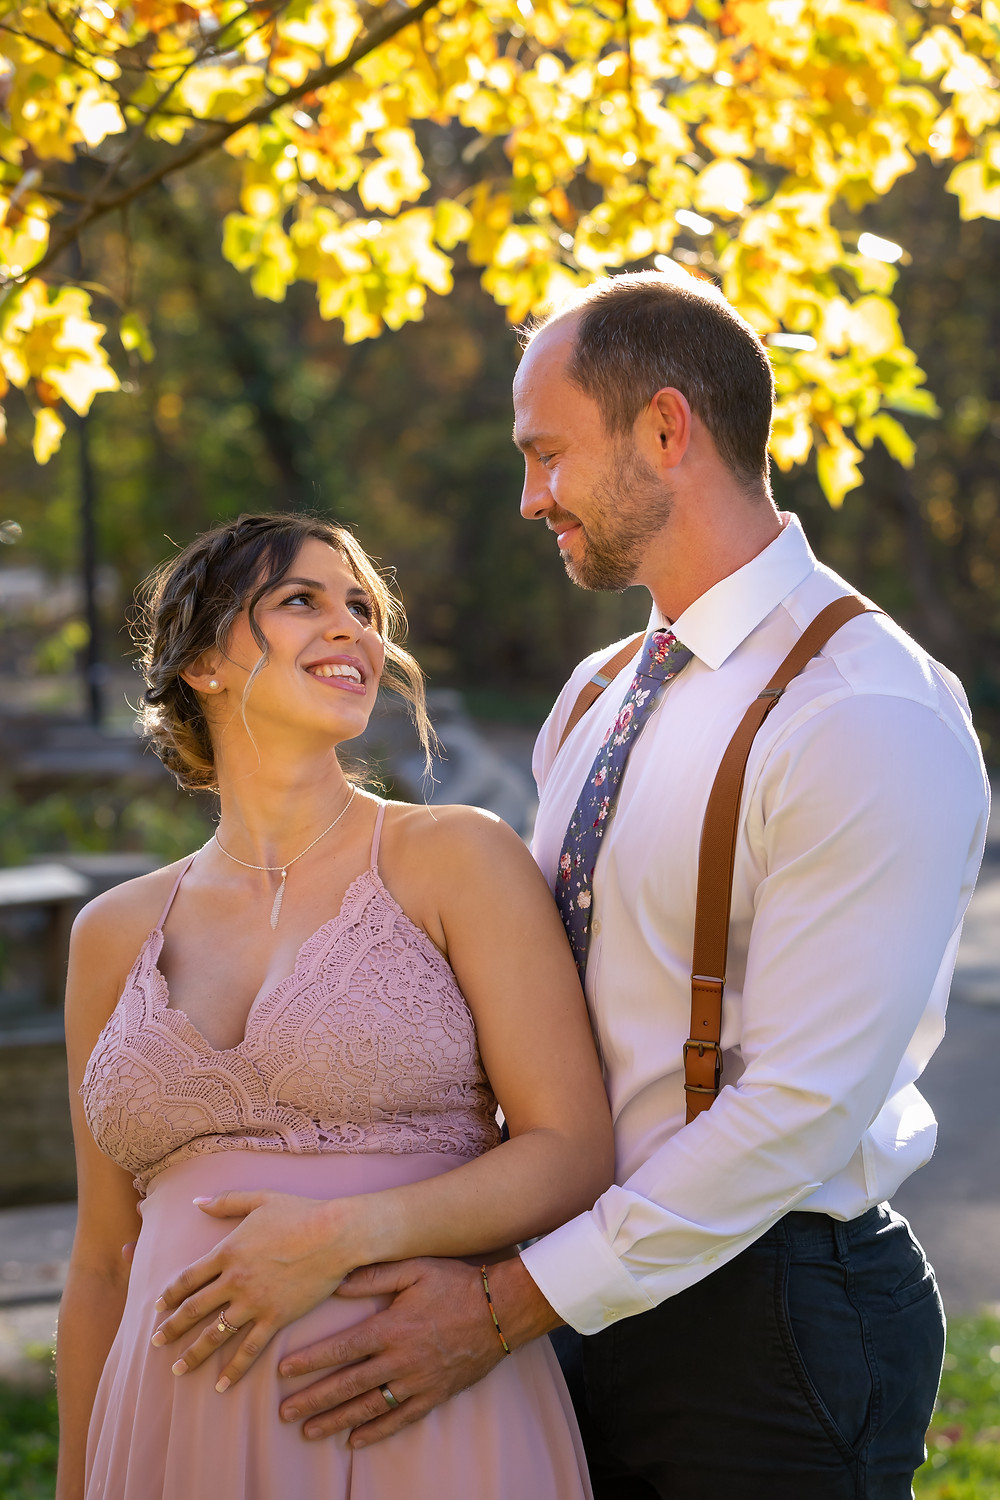 Cincinnati wedding photographer captures image of groom caressing bride's pregnant belly smiling.